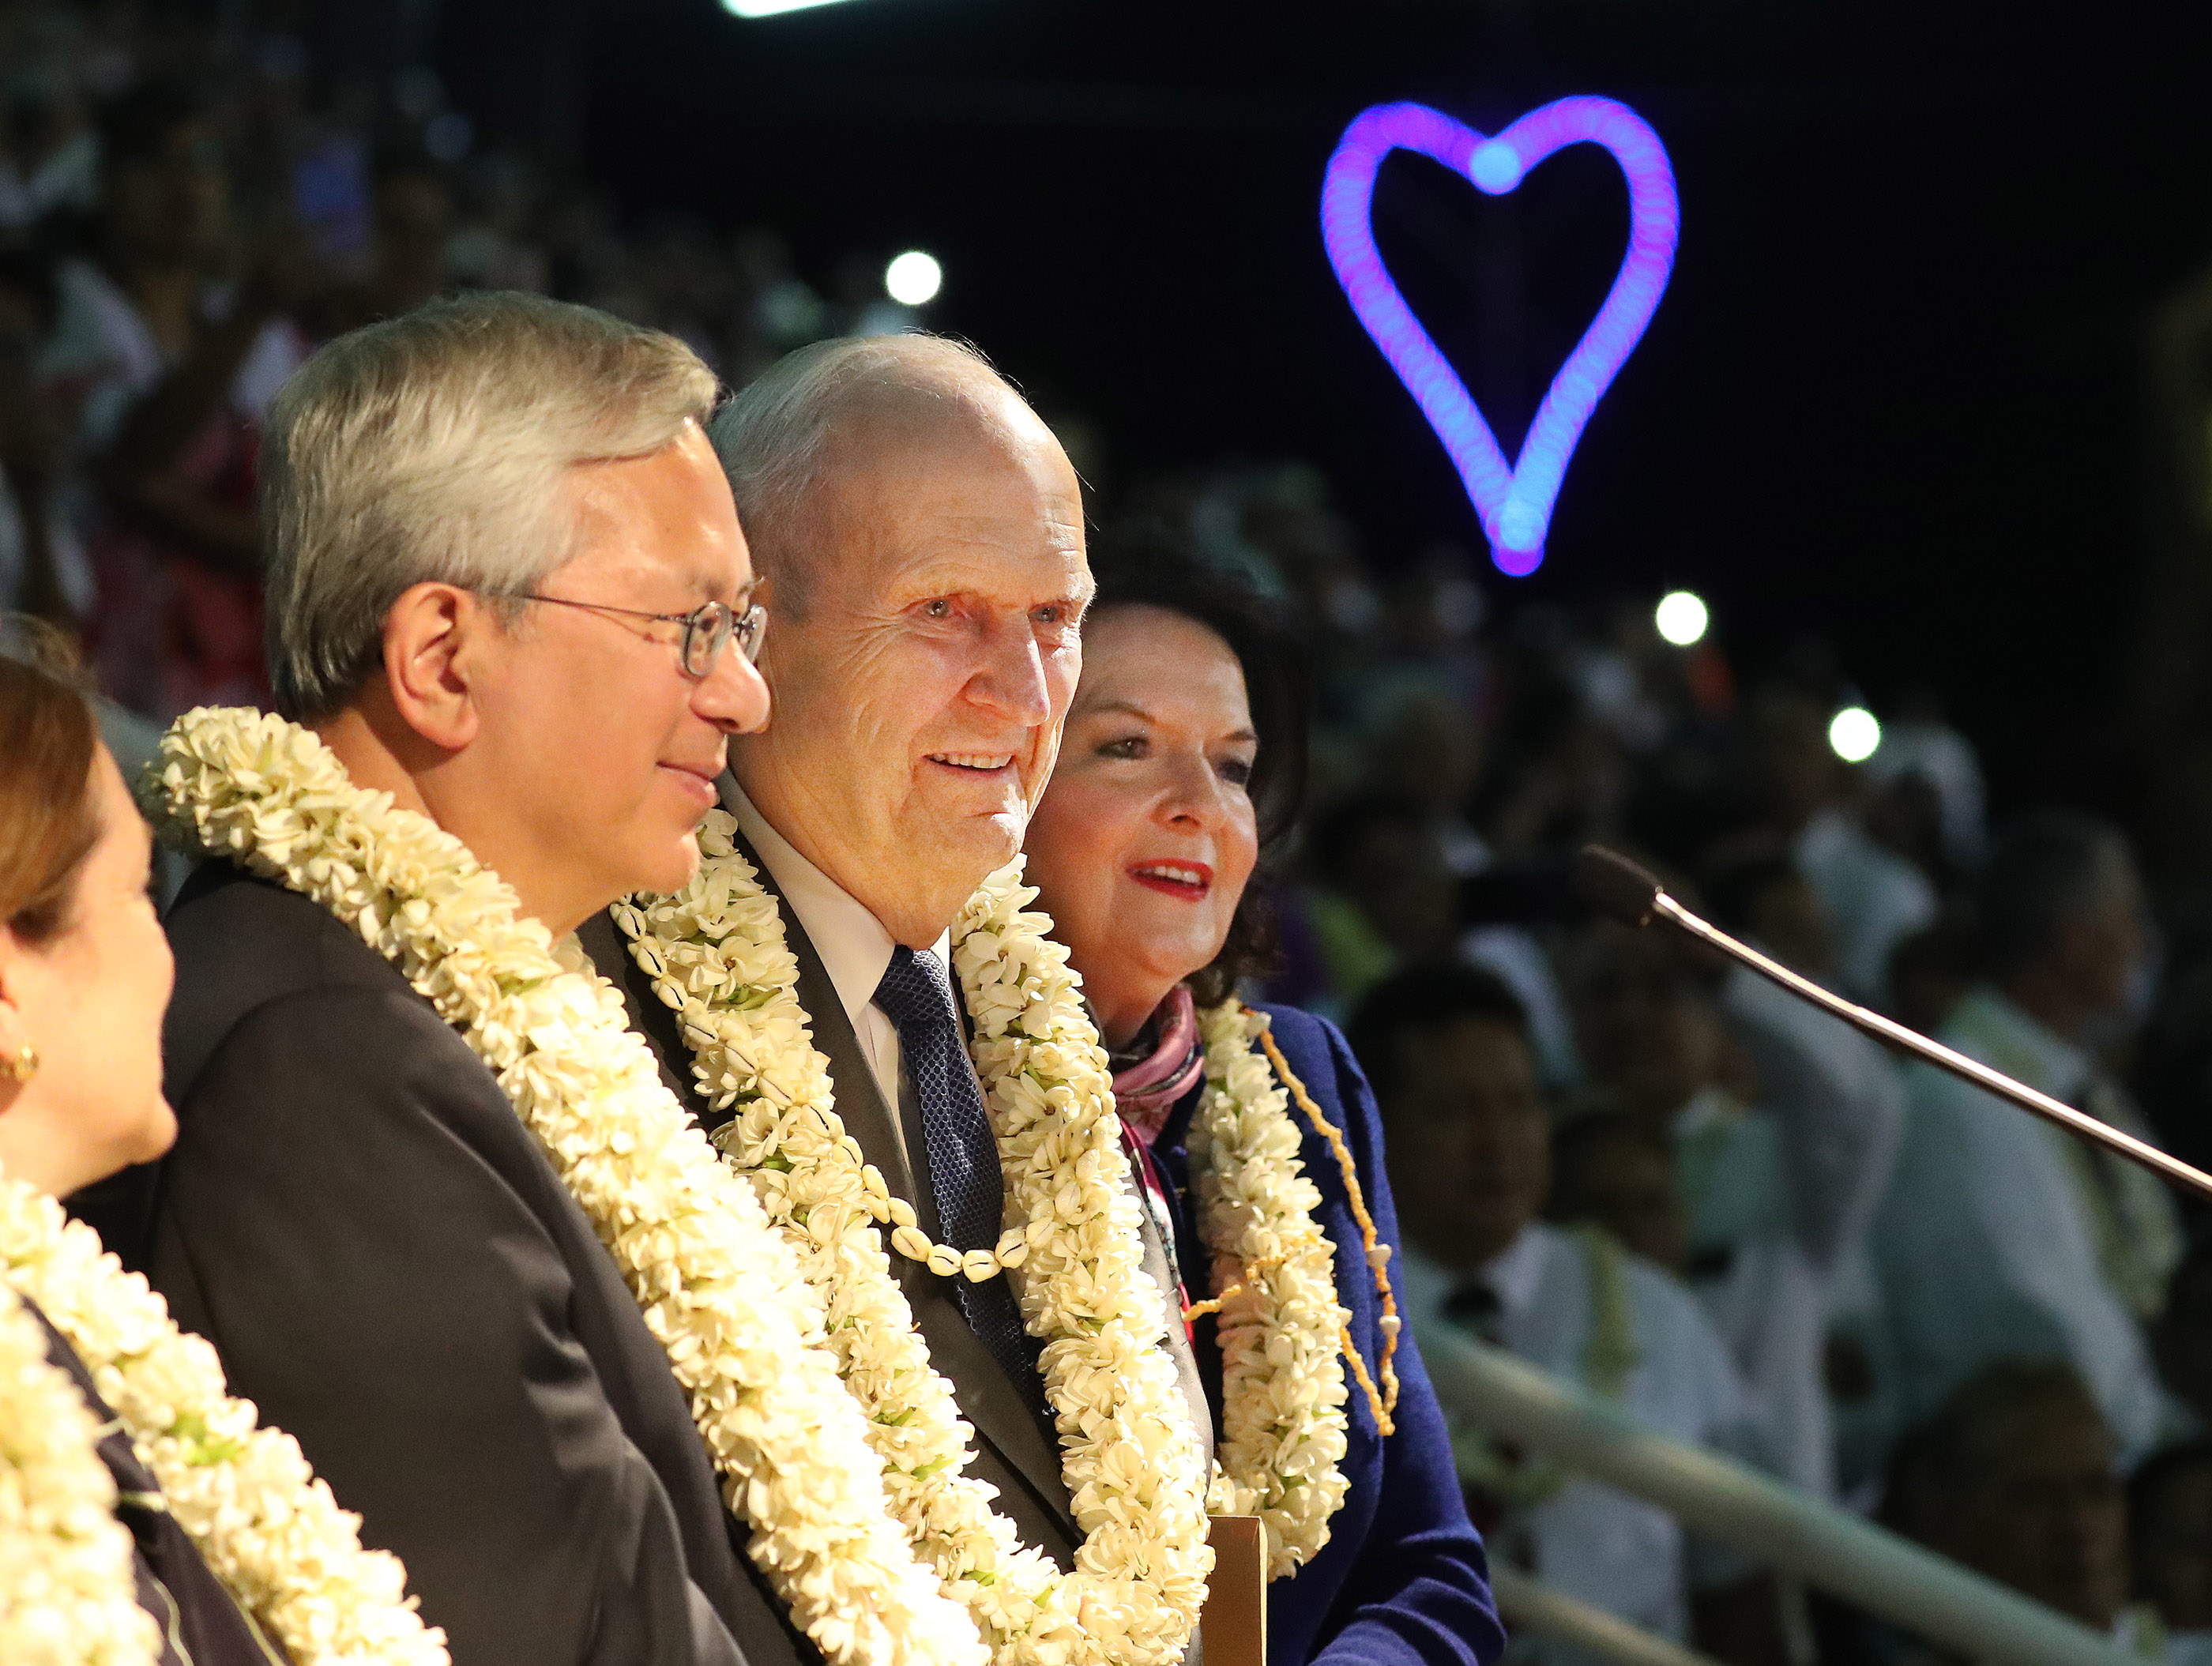 President Russell M. Nelson of The Church of Jesus Christ of Latter-day Saints and his wife, Sister Wendy Nelson, and Elder Gerrit W. Gong of the Quorum of the Twelve Apostles listen to attendees sing for them after a devotional in Papeete, Tahiti, on May 24, 2019.